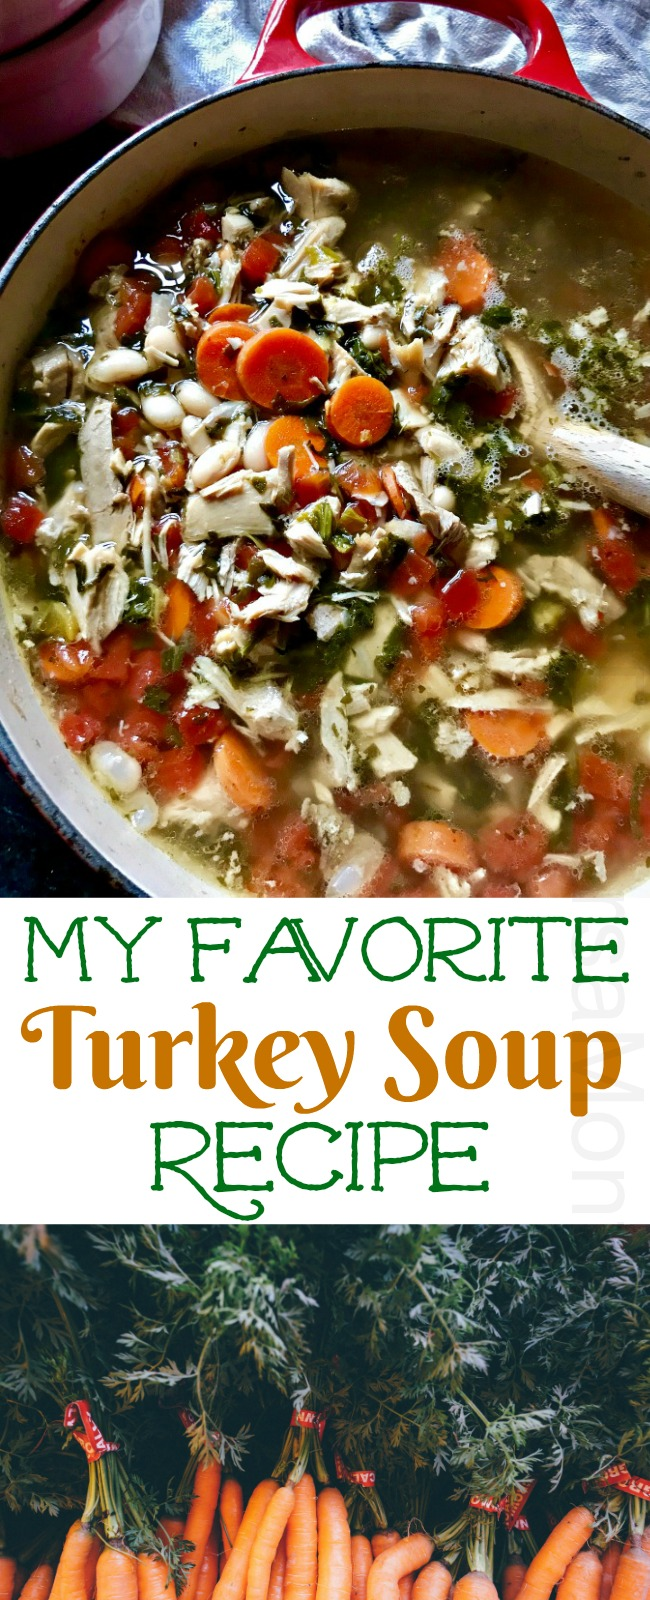 My Favorite Turkey Soup Recipe